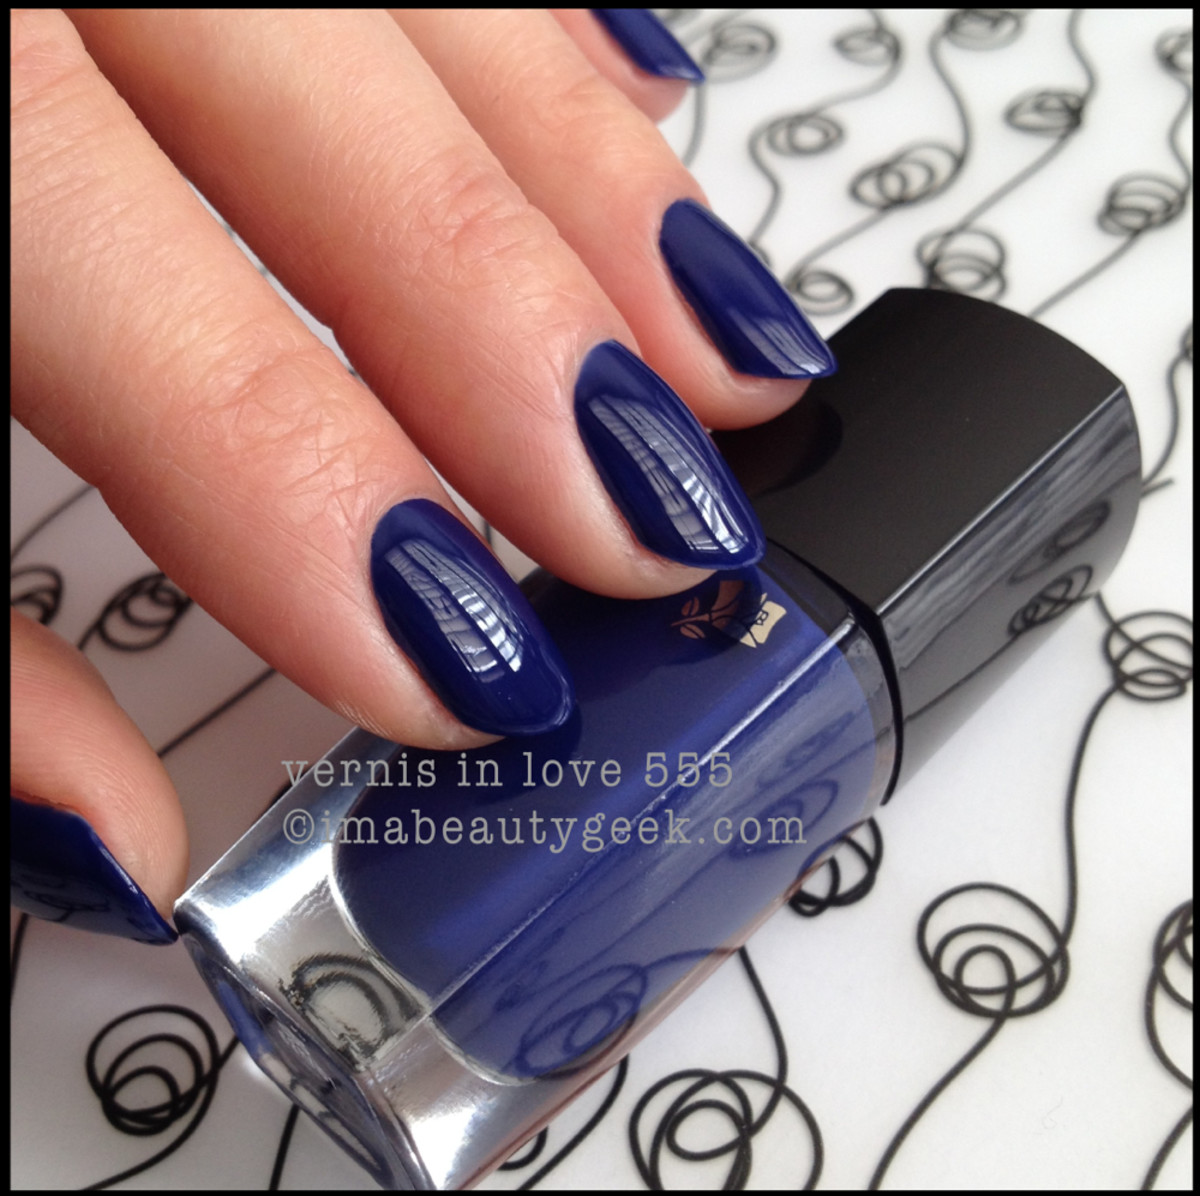 Lancome Nuit D'Azur Vernis in Love 555 Summer 2014